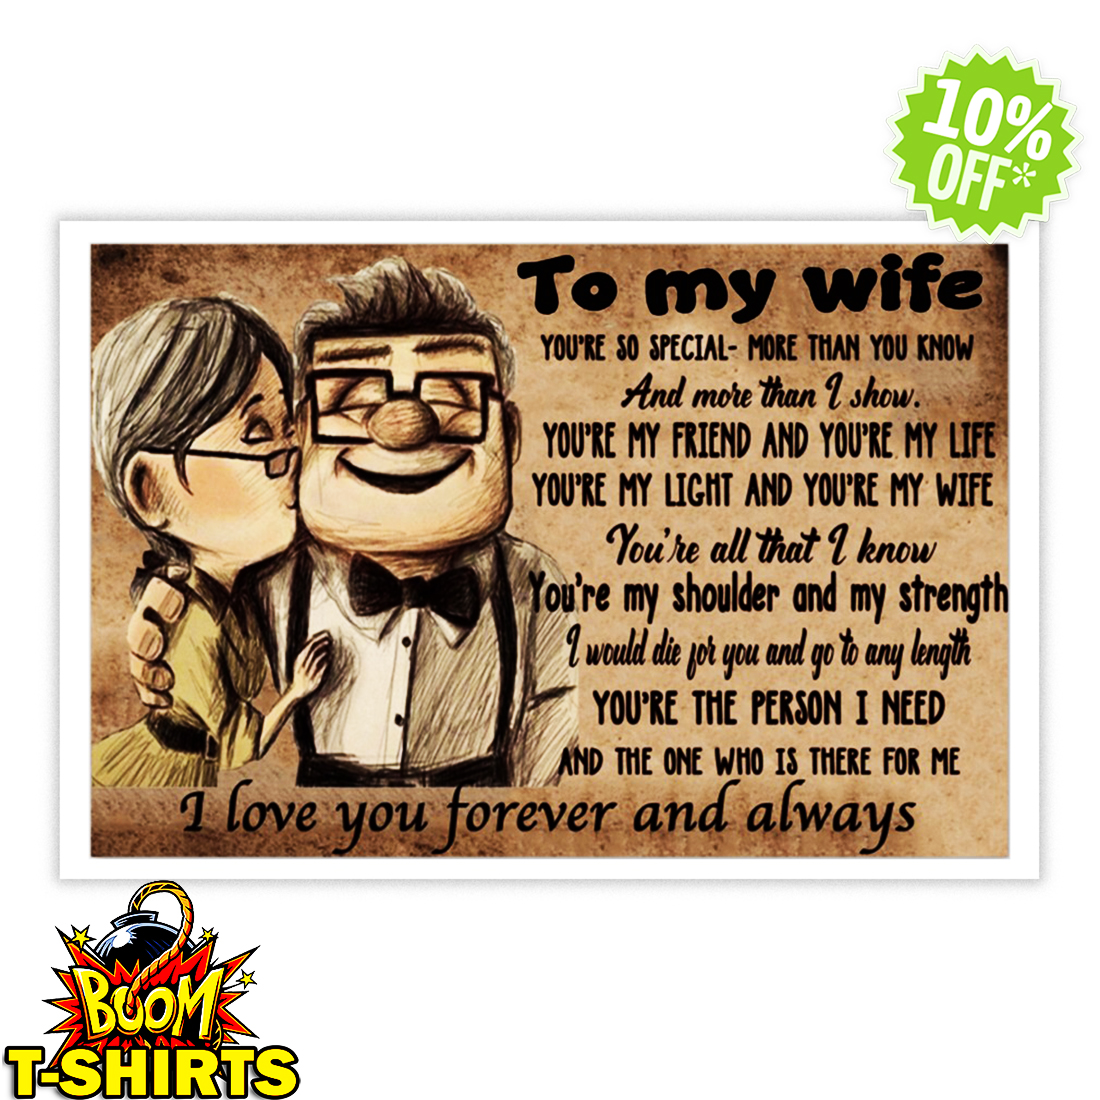 Up to my wife you're so special more than you know and more than I show poster